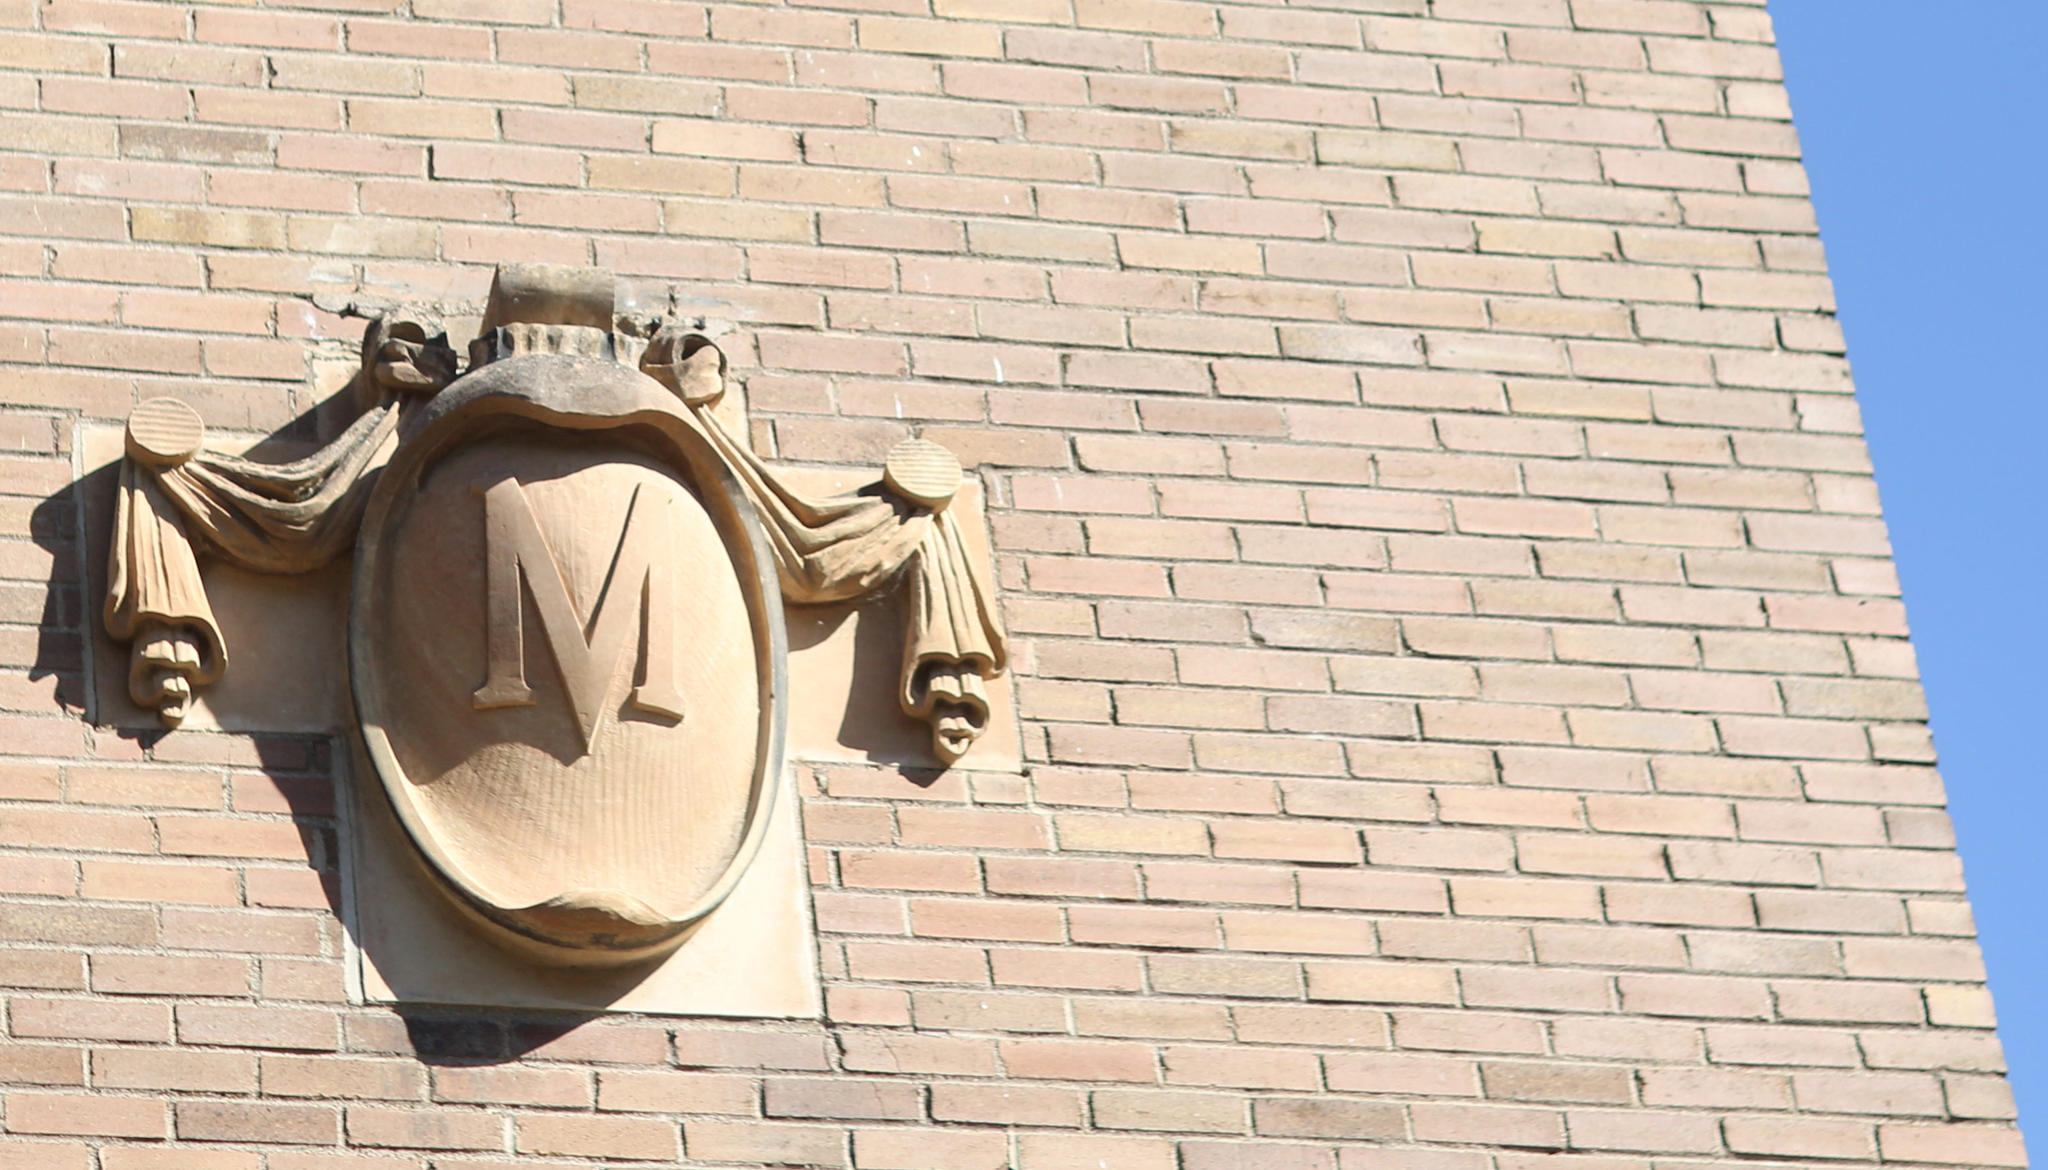 A stylized M on the side of a brick building, blue sky in the background